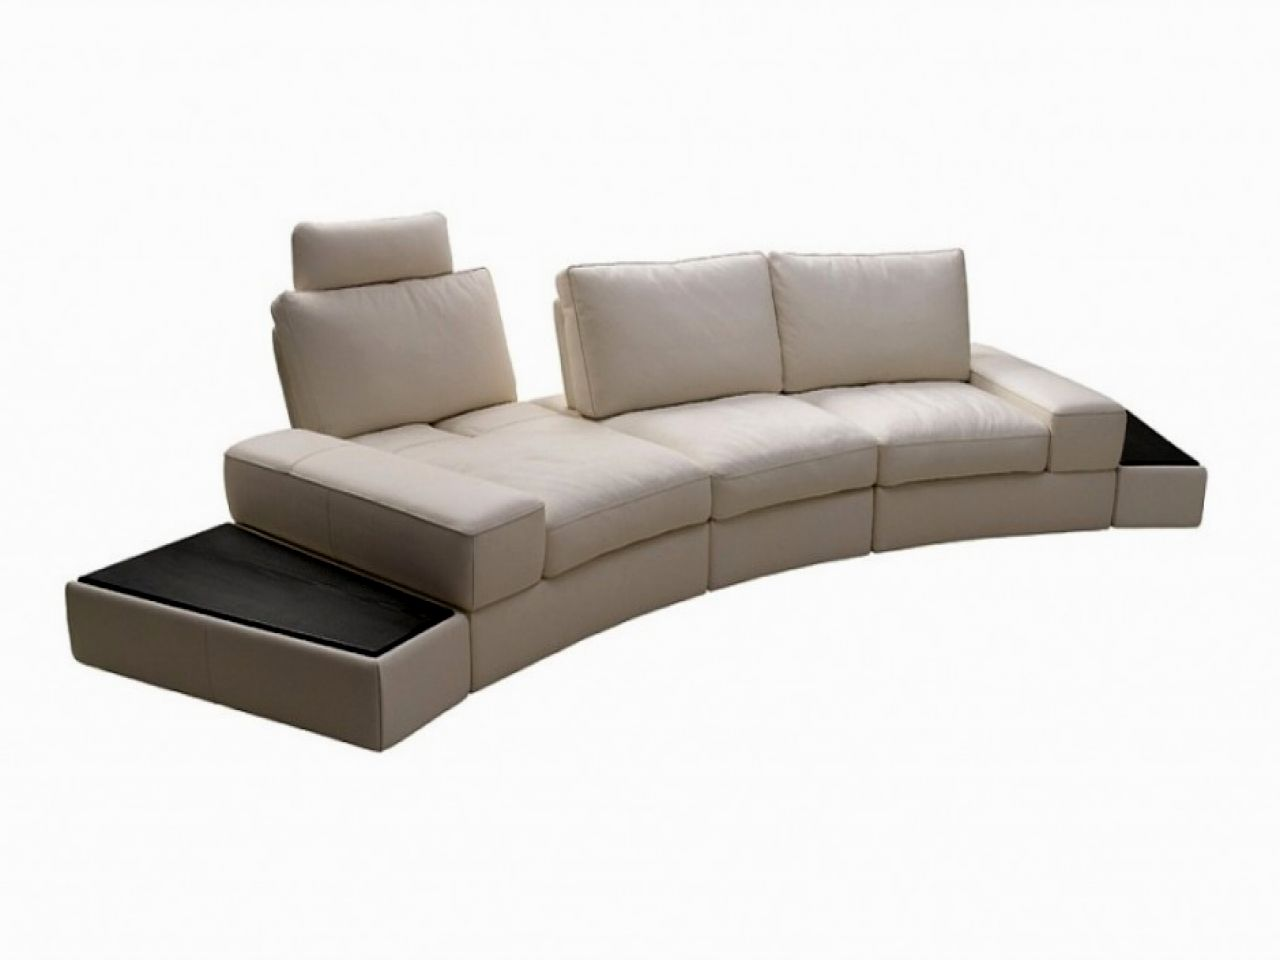 fresh leather sectional sleeper sofa ideas-Elegant Leather Sectional Sleeper sofa Wallpaper